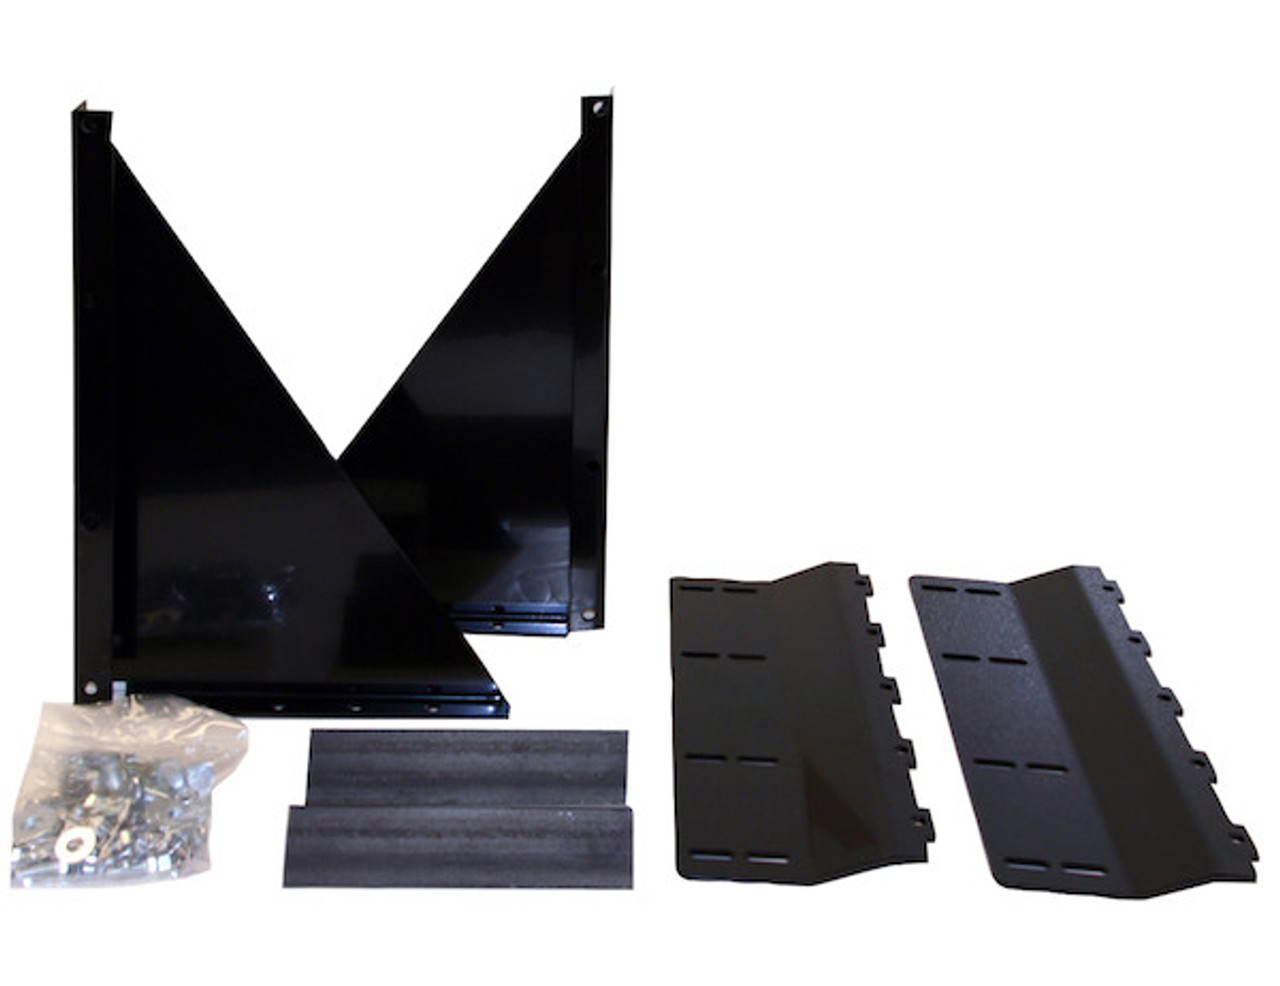 REQUIRED MOUNTING KIT VARIES BY TRUCK MODEL 13006027 BUYERS SALTDOGG LIFTDOGG Pick Up Truck 1 pc. Tailgate Lift Gate